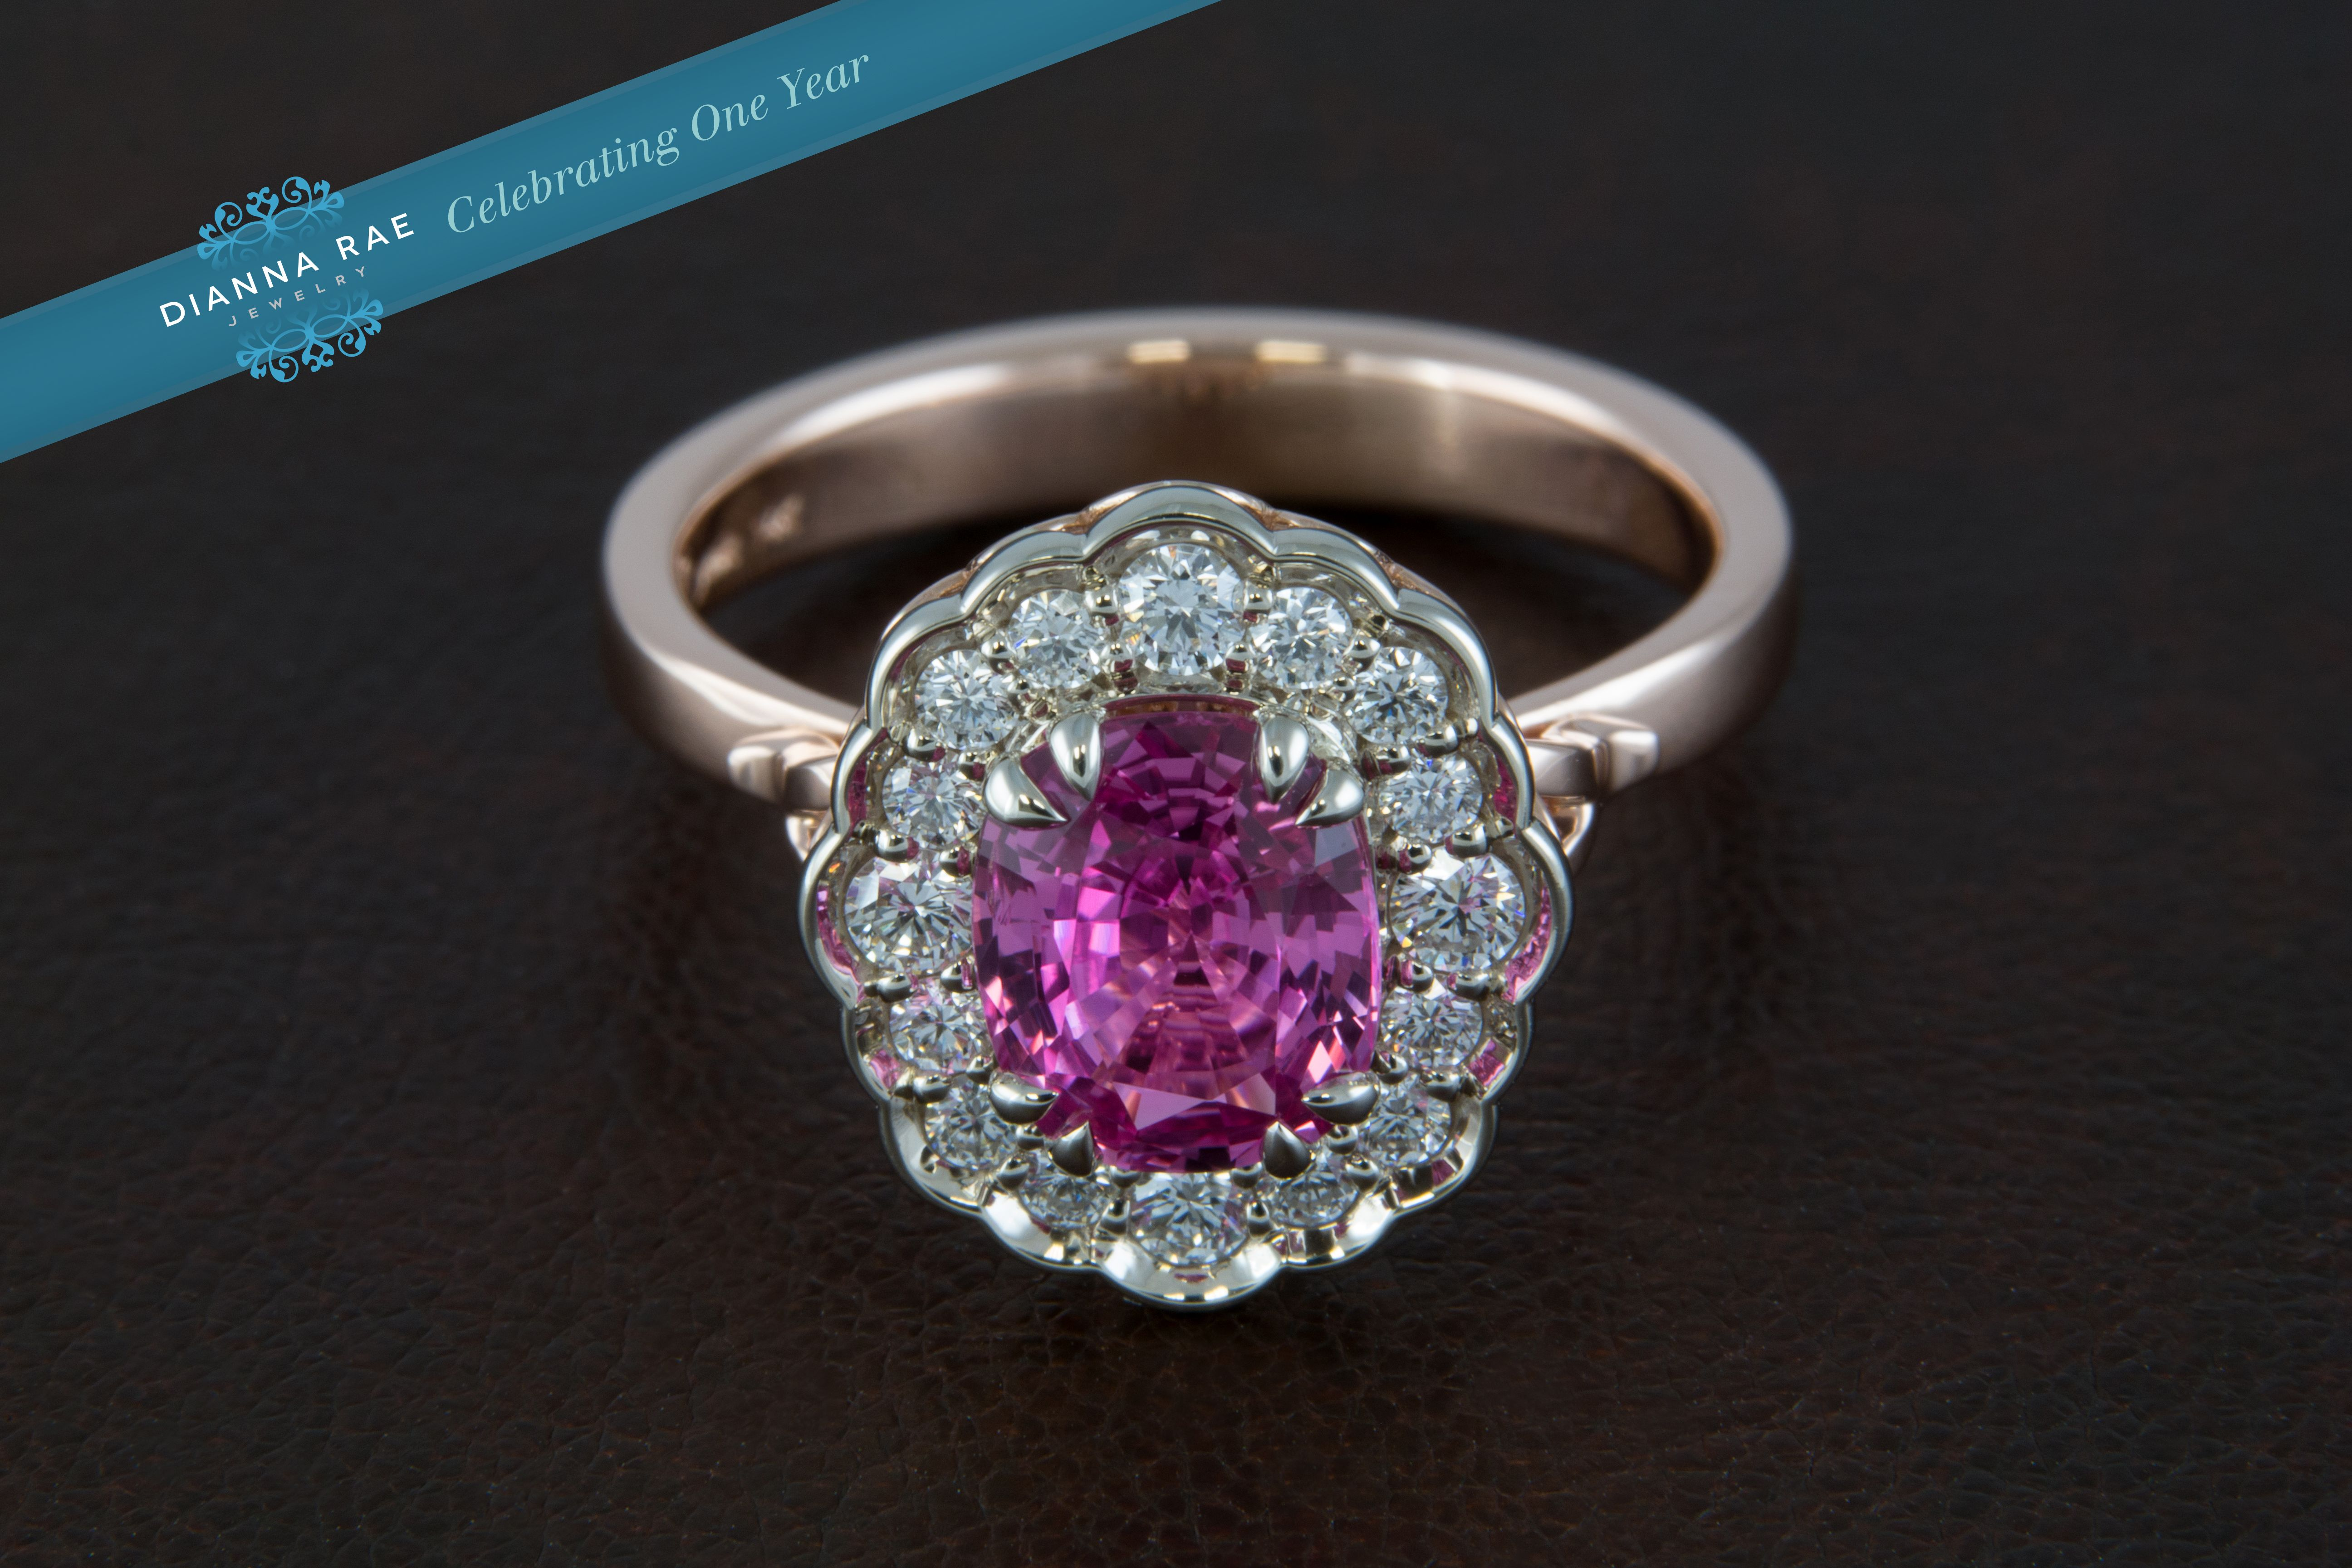 Rarely this saturated the pink sapphire in this ring is intensified